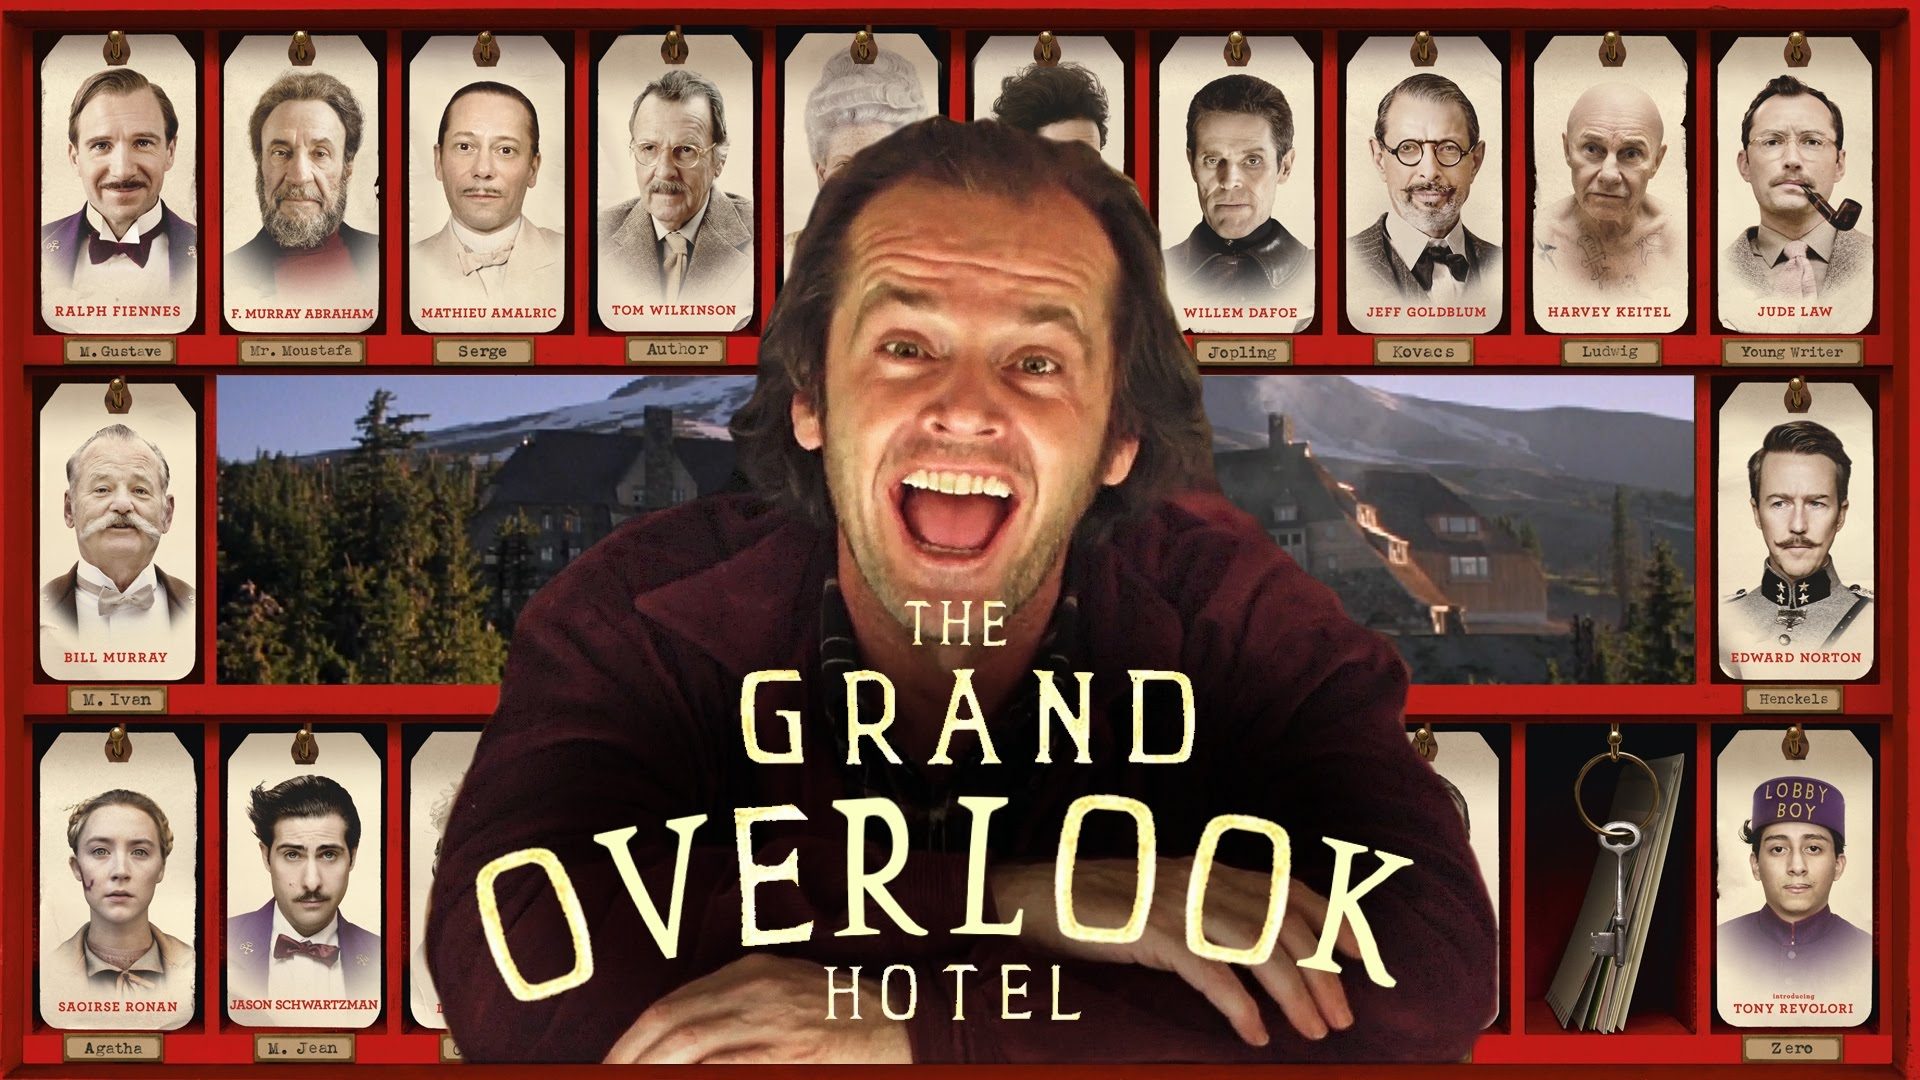 The Grand Overlook Hotel, A Mashup of 'The Grand Budapest Hotel' and 'The Shining'